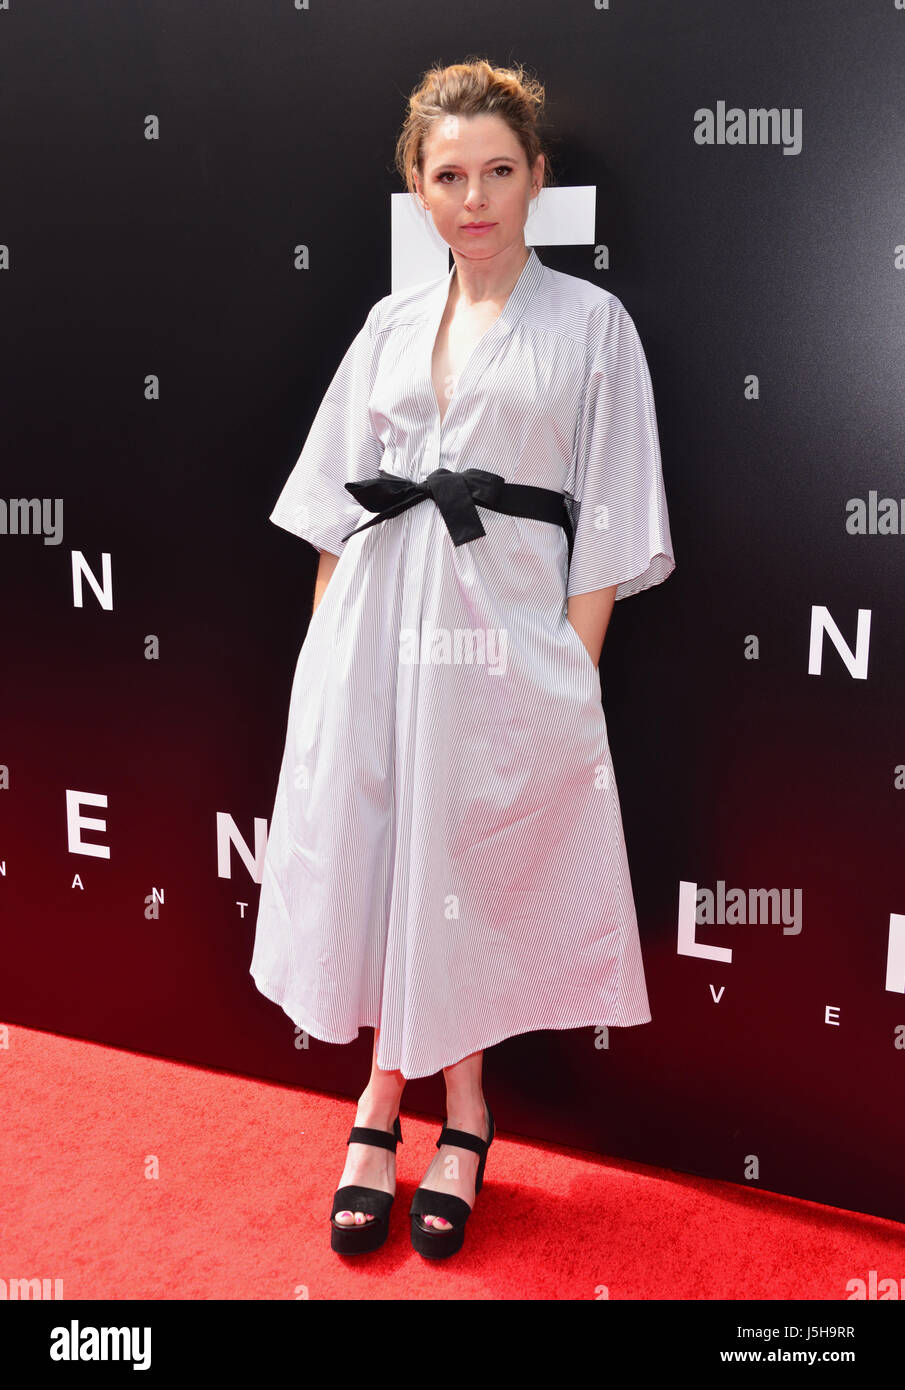 Amy Seimetz 032 arriving at the Alien Premiere at the TCL Chinese Theatre in Los Angeles. May 17, 2017. - Stock Image